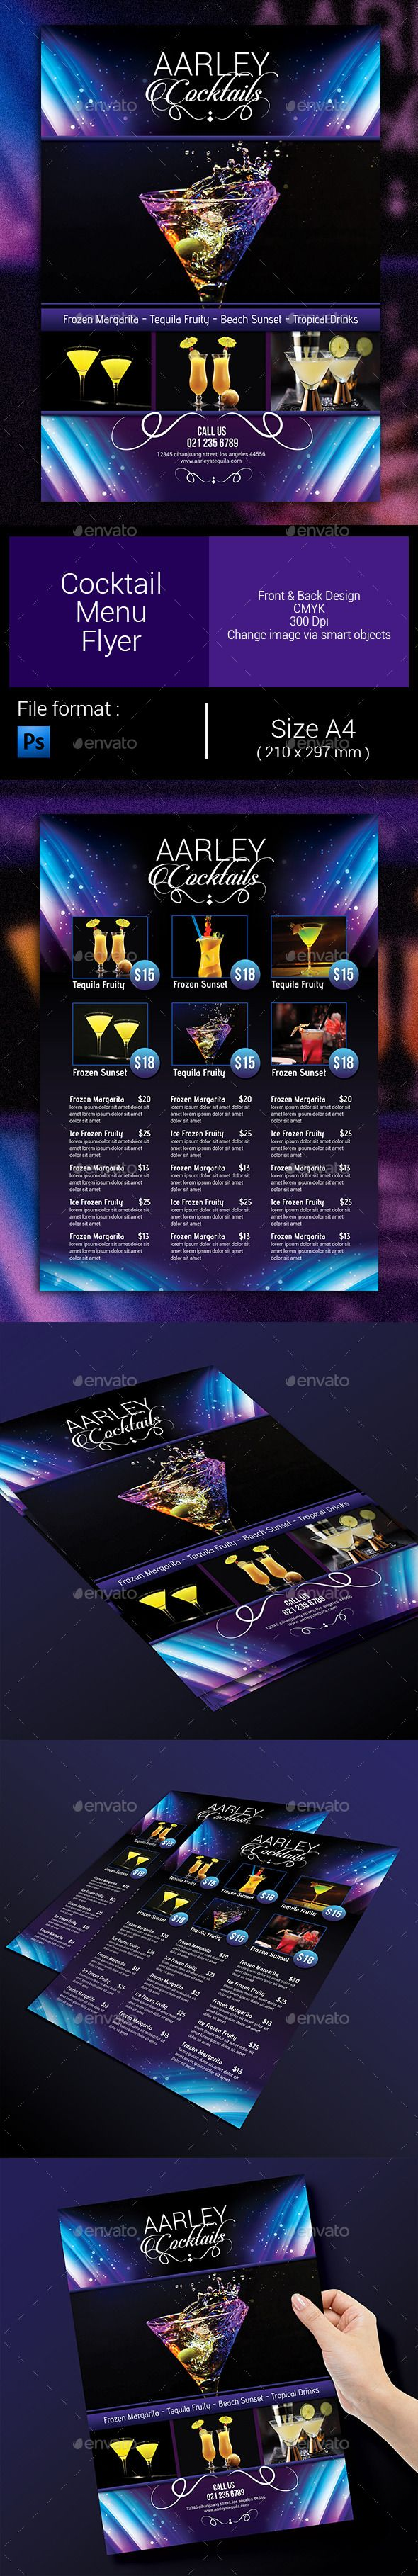 Cocktail Menu Flyer Template #design Download: http://graphicriver.net/item/cocktail-menu-flyer/9597041?ref=ksioks